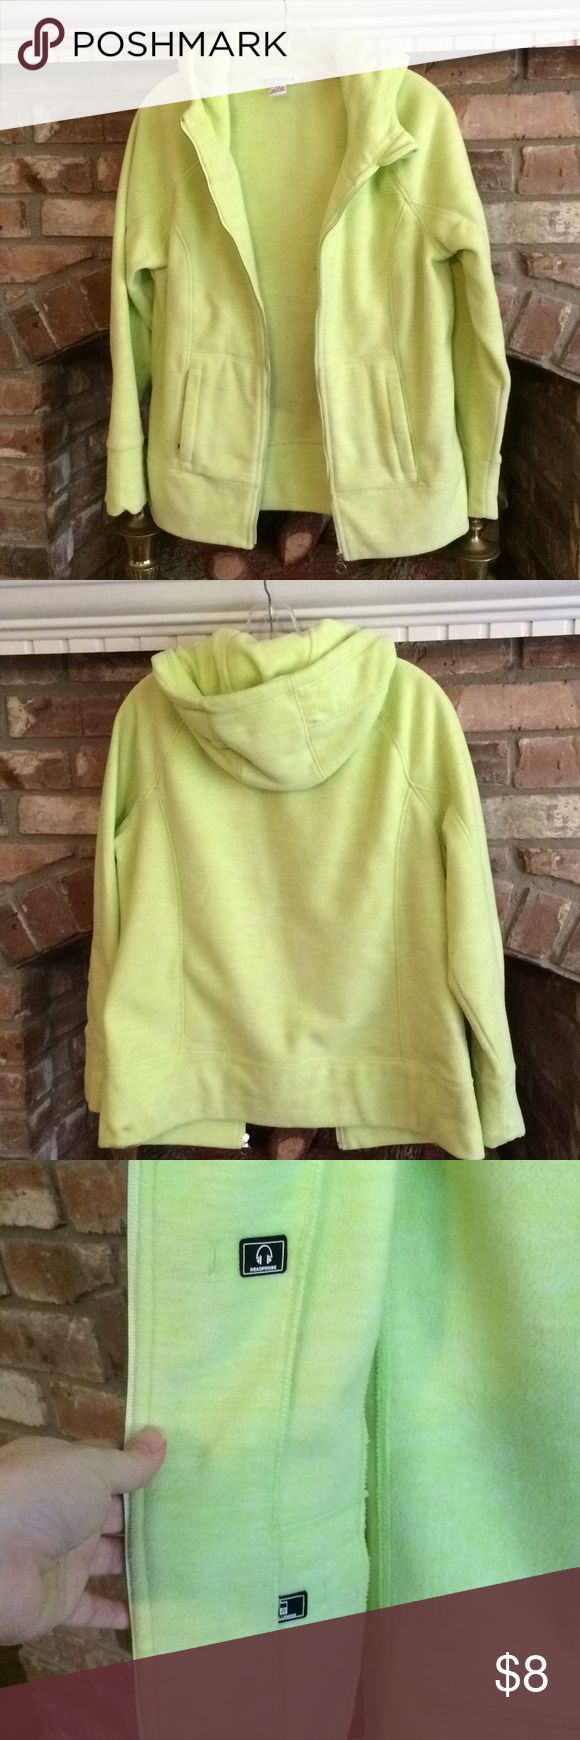 Ladies hooded fleece jacket Ladies lime green hooded fleece jacket. Size L. Has an inside pocket for a cell phone and headphones. Has a small dark smudge on the lower left back noted in the photos. Unlisted Jackets & Coats